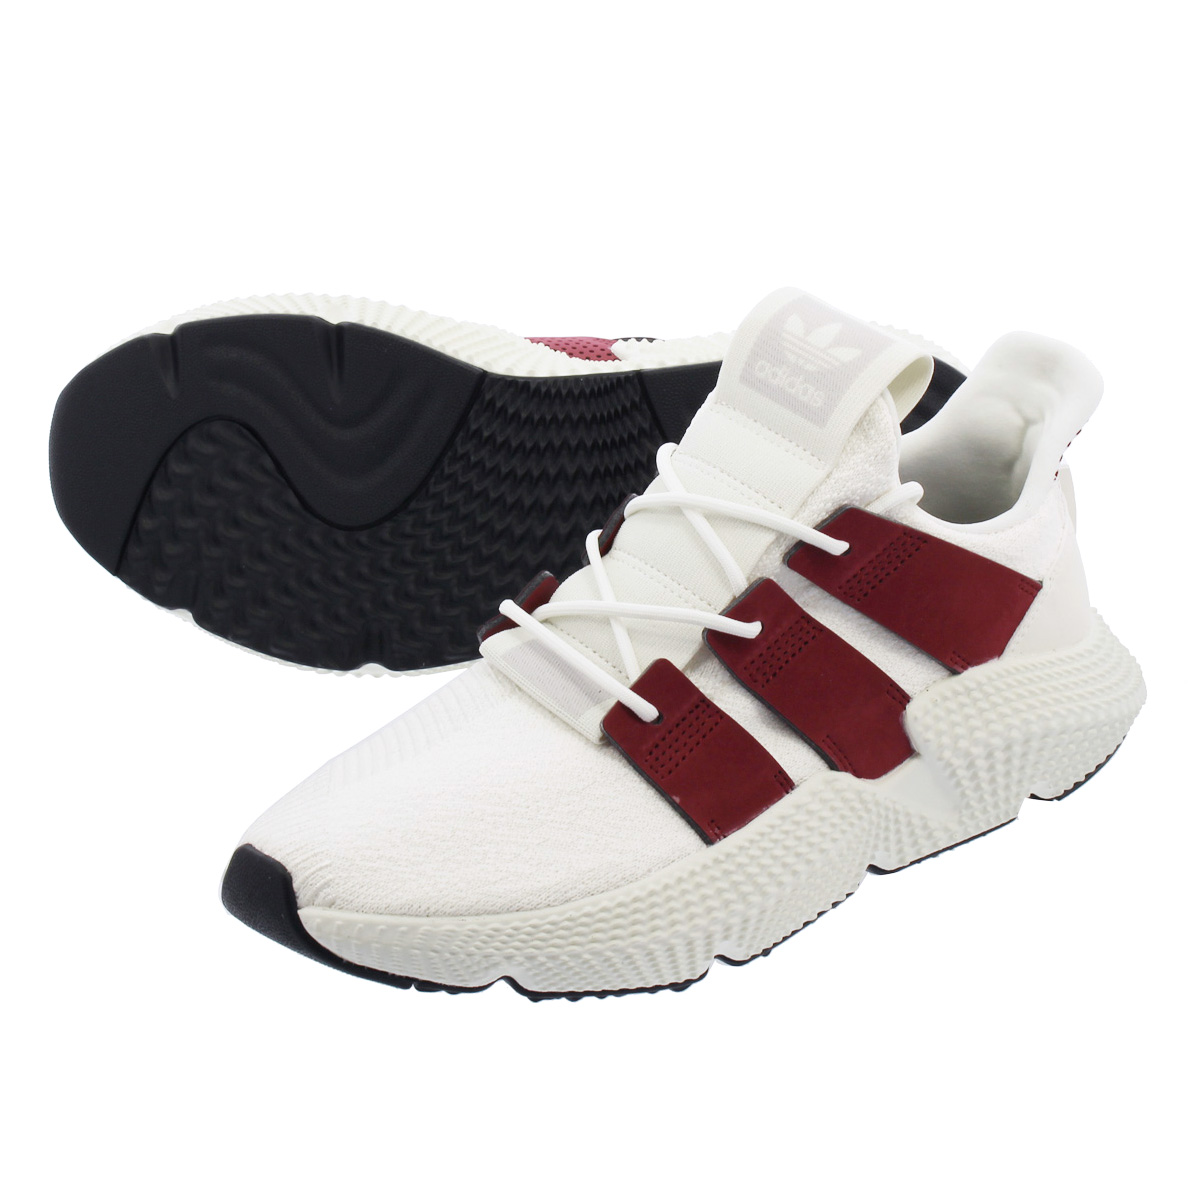 Adidas Prophete Black and White